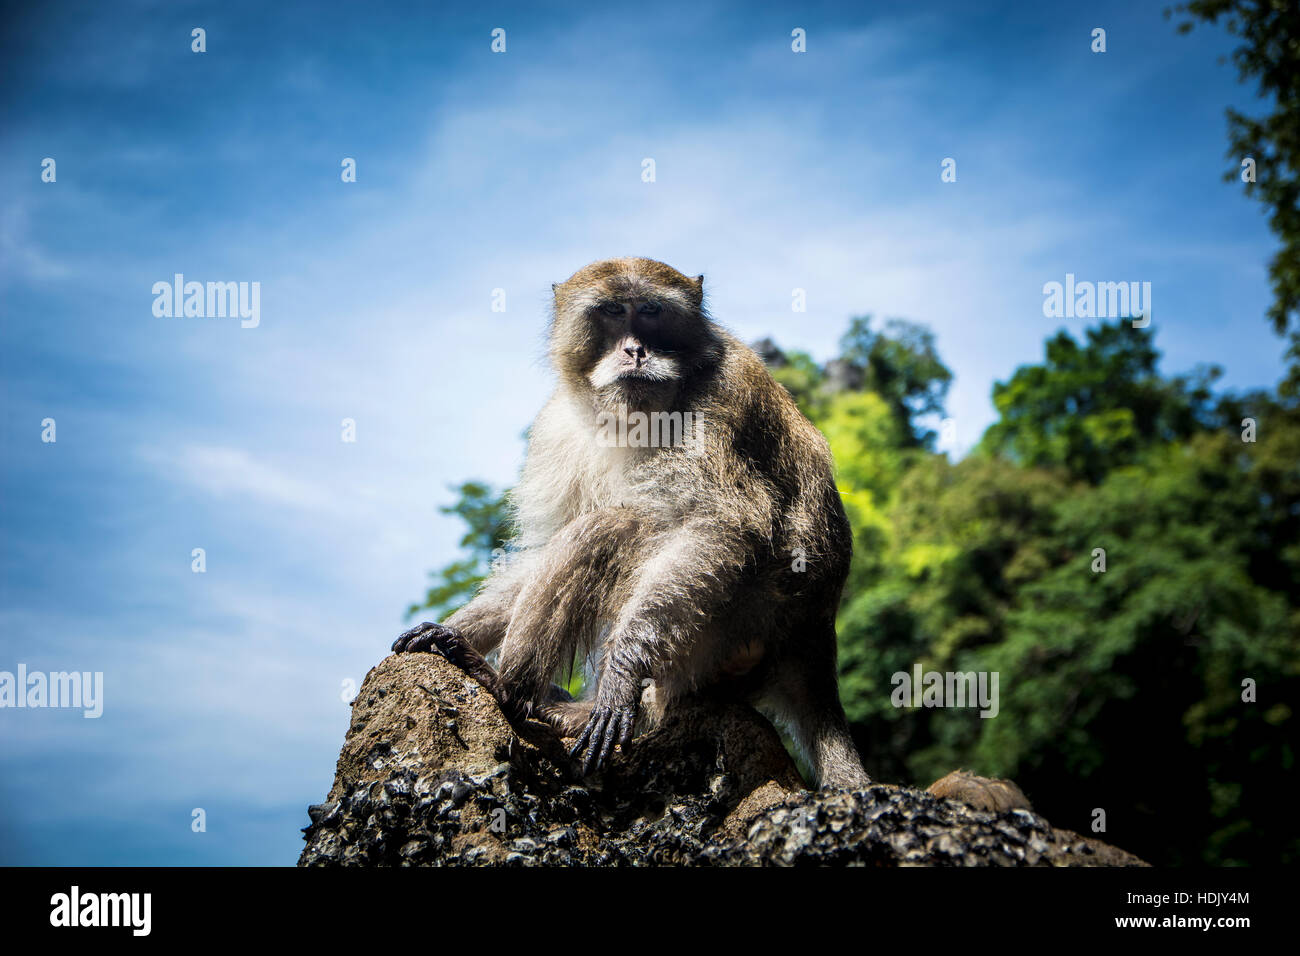 Monkey sitting on rock on background of jungles and sky. - Stock Image